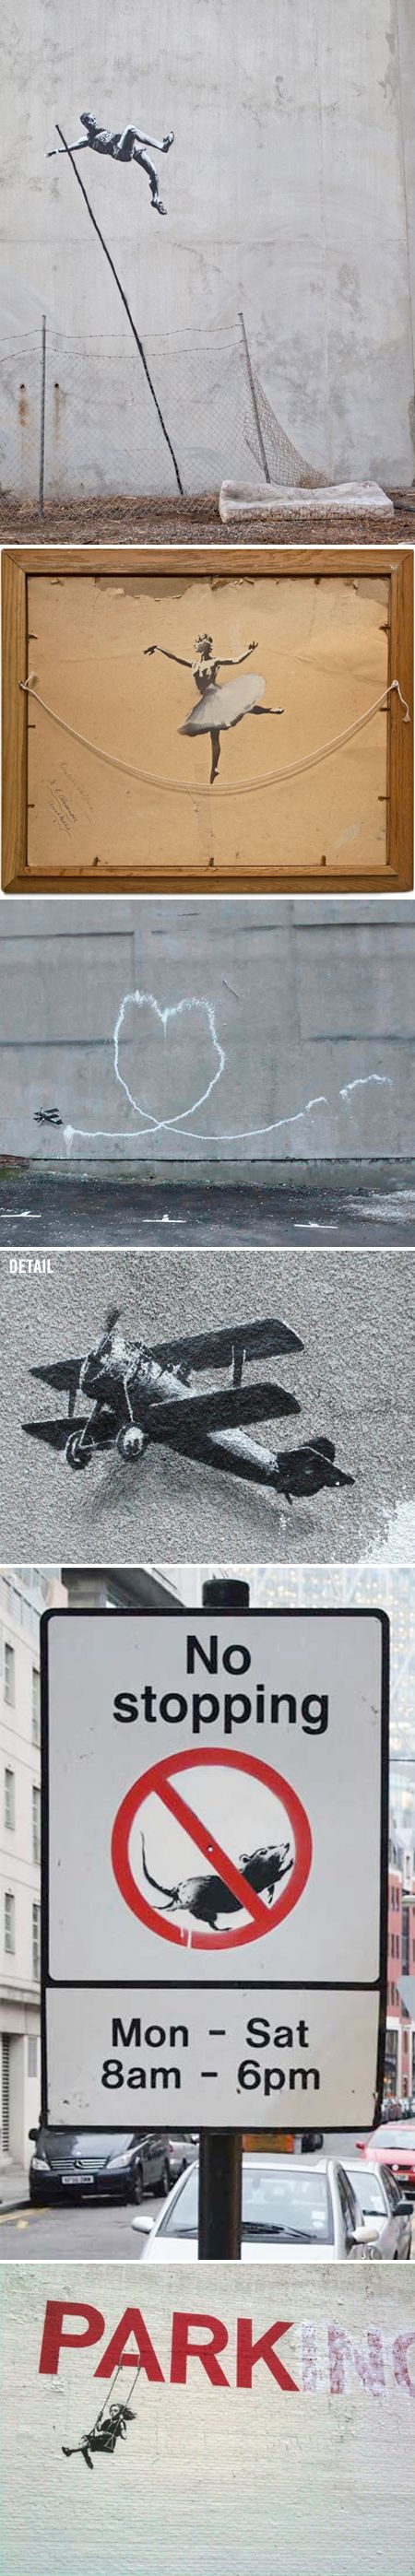 Banksy, I'm assuming from repinning. I love Banksy's work. It's awesome when you are in New York City and spot his work. I have a photograph from work I've seen there. I love taking photographs of all the awesome artwork on the city buildings. Incredible.